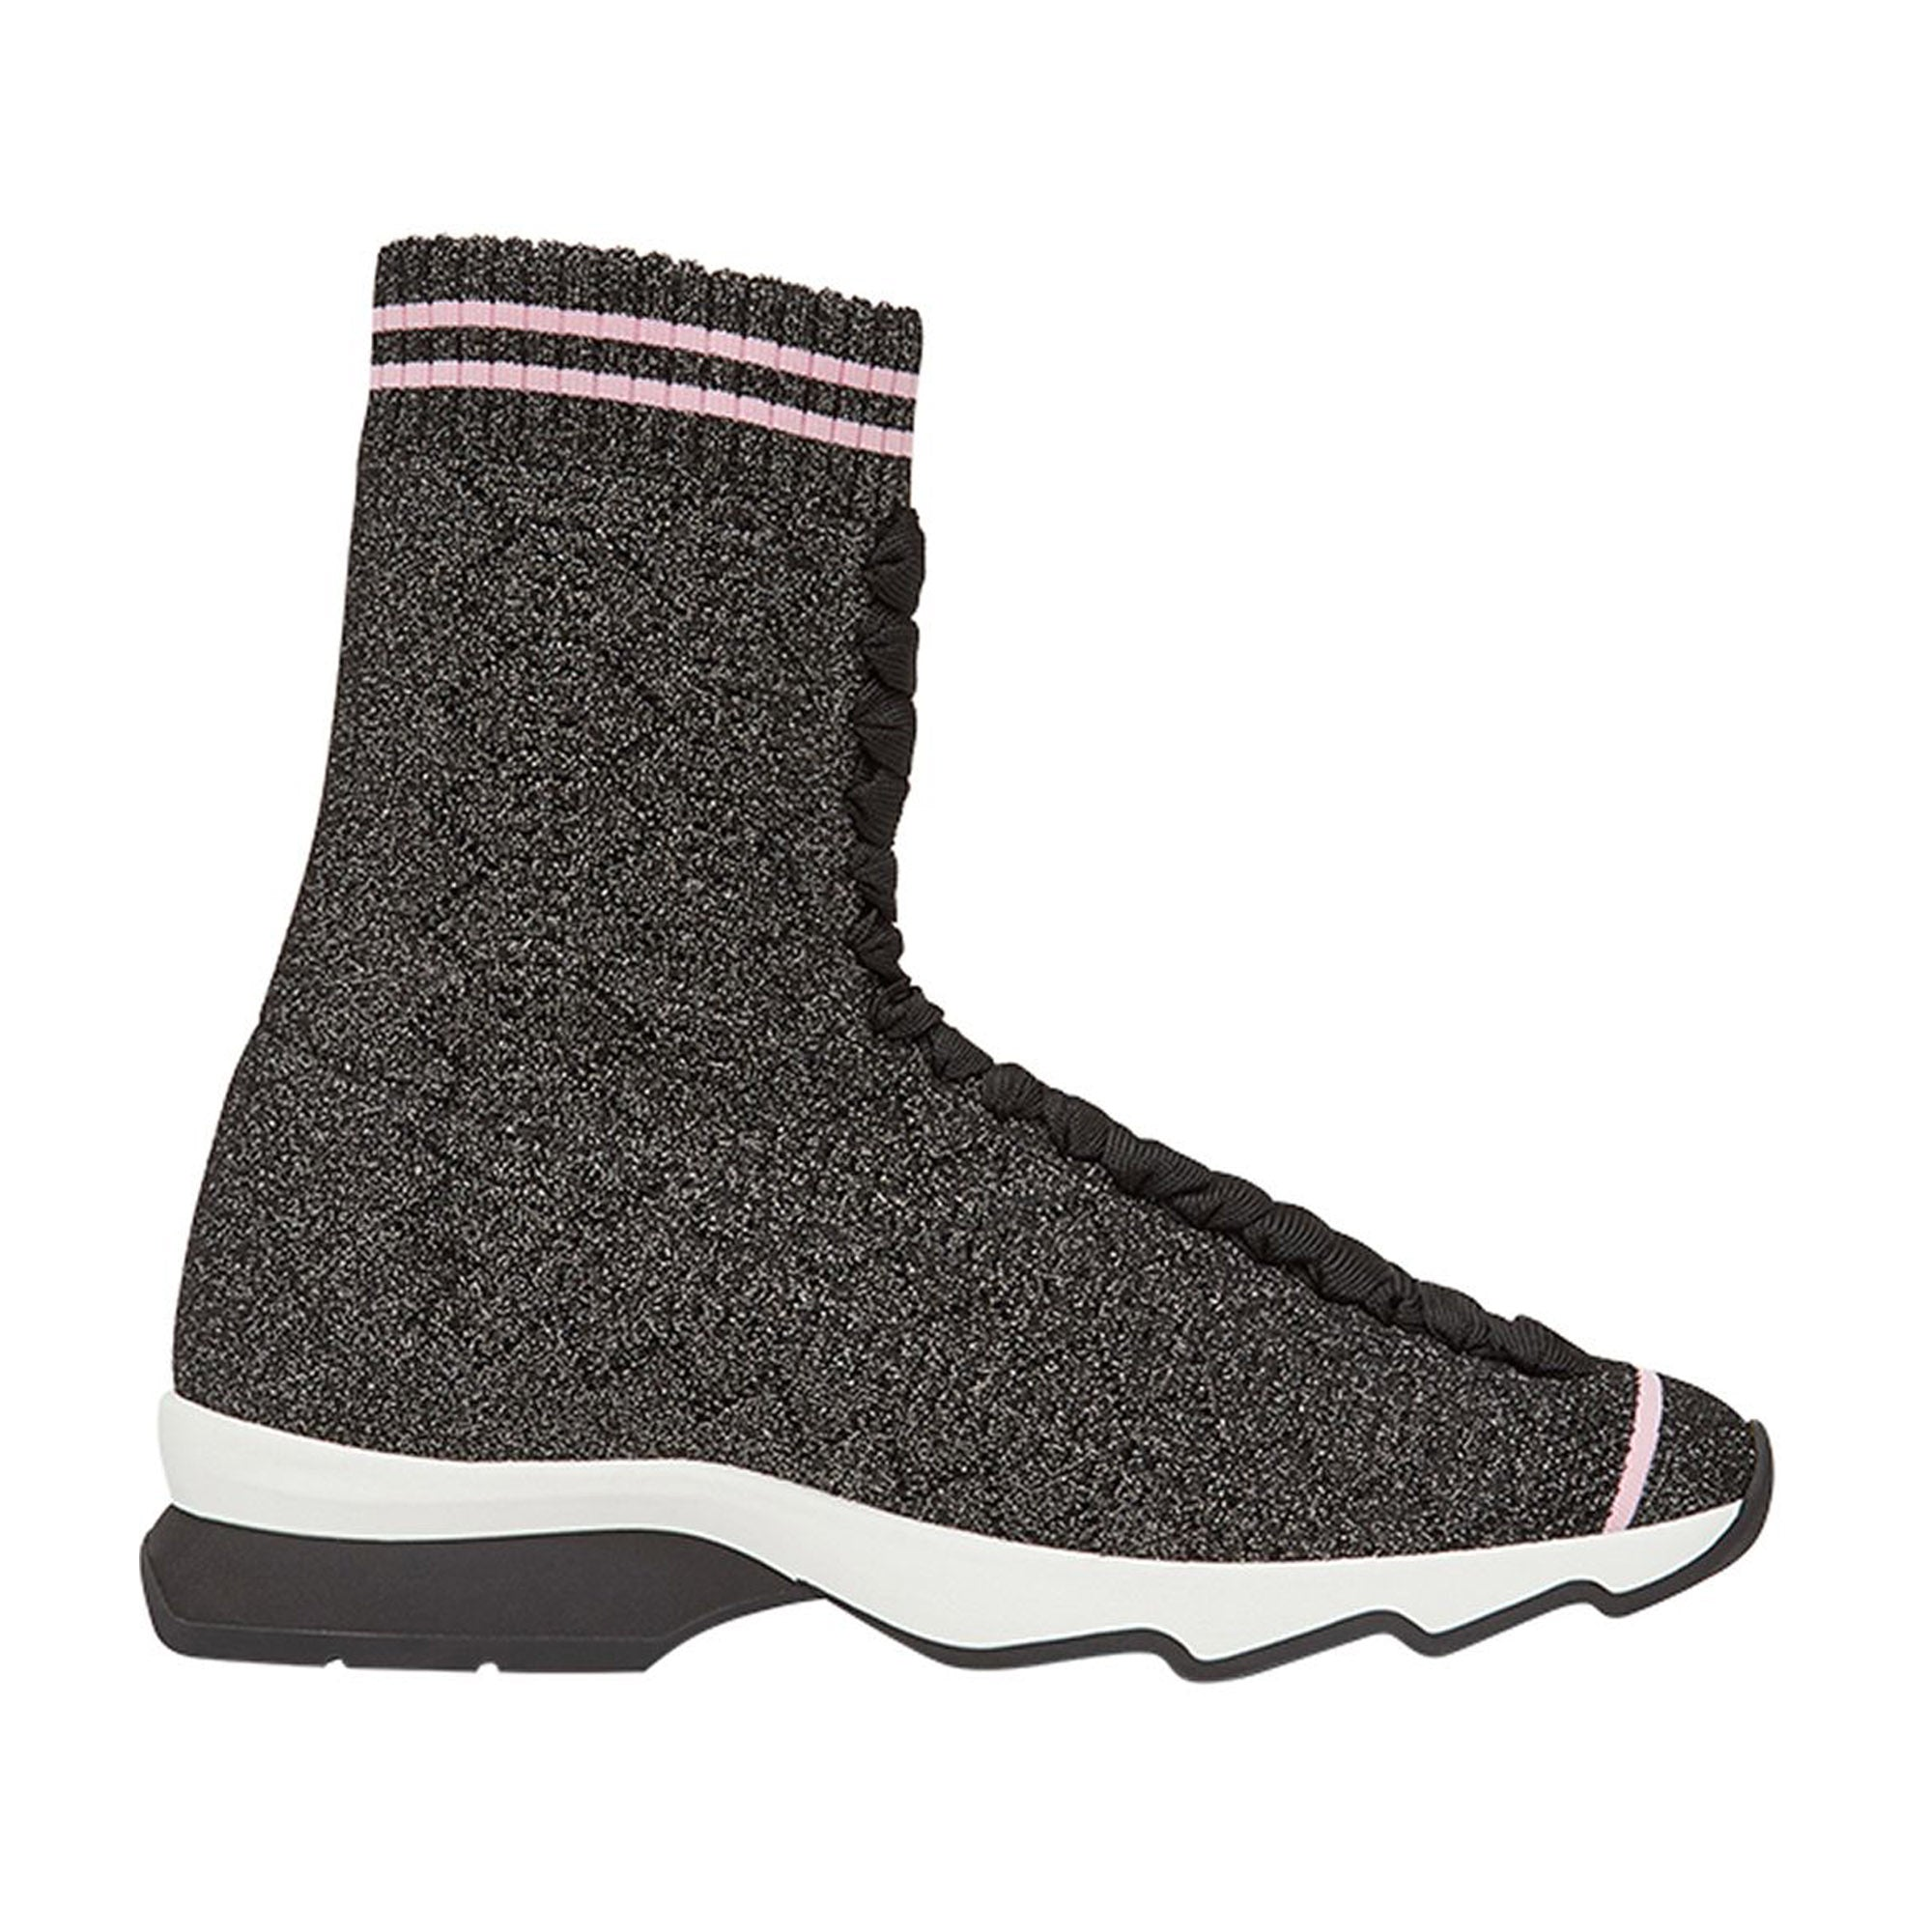 Fendi Gray Fabric Sock Sneakers